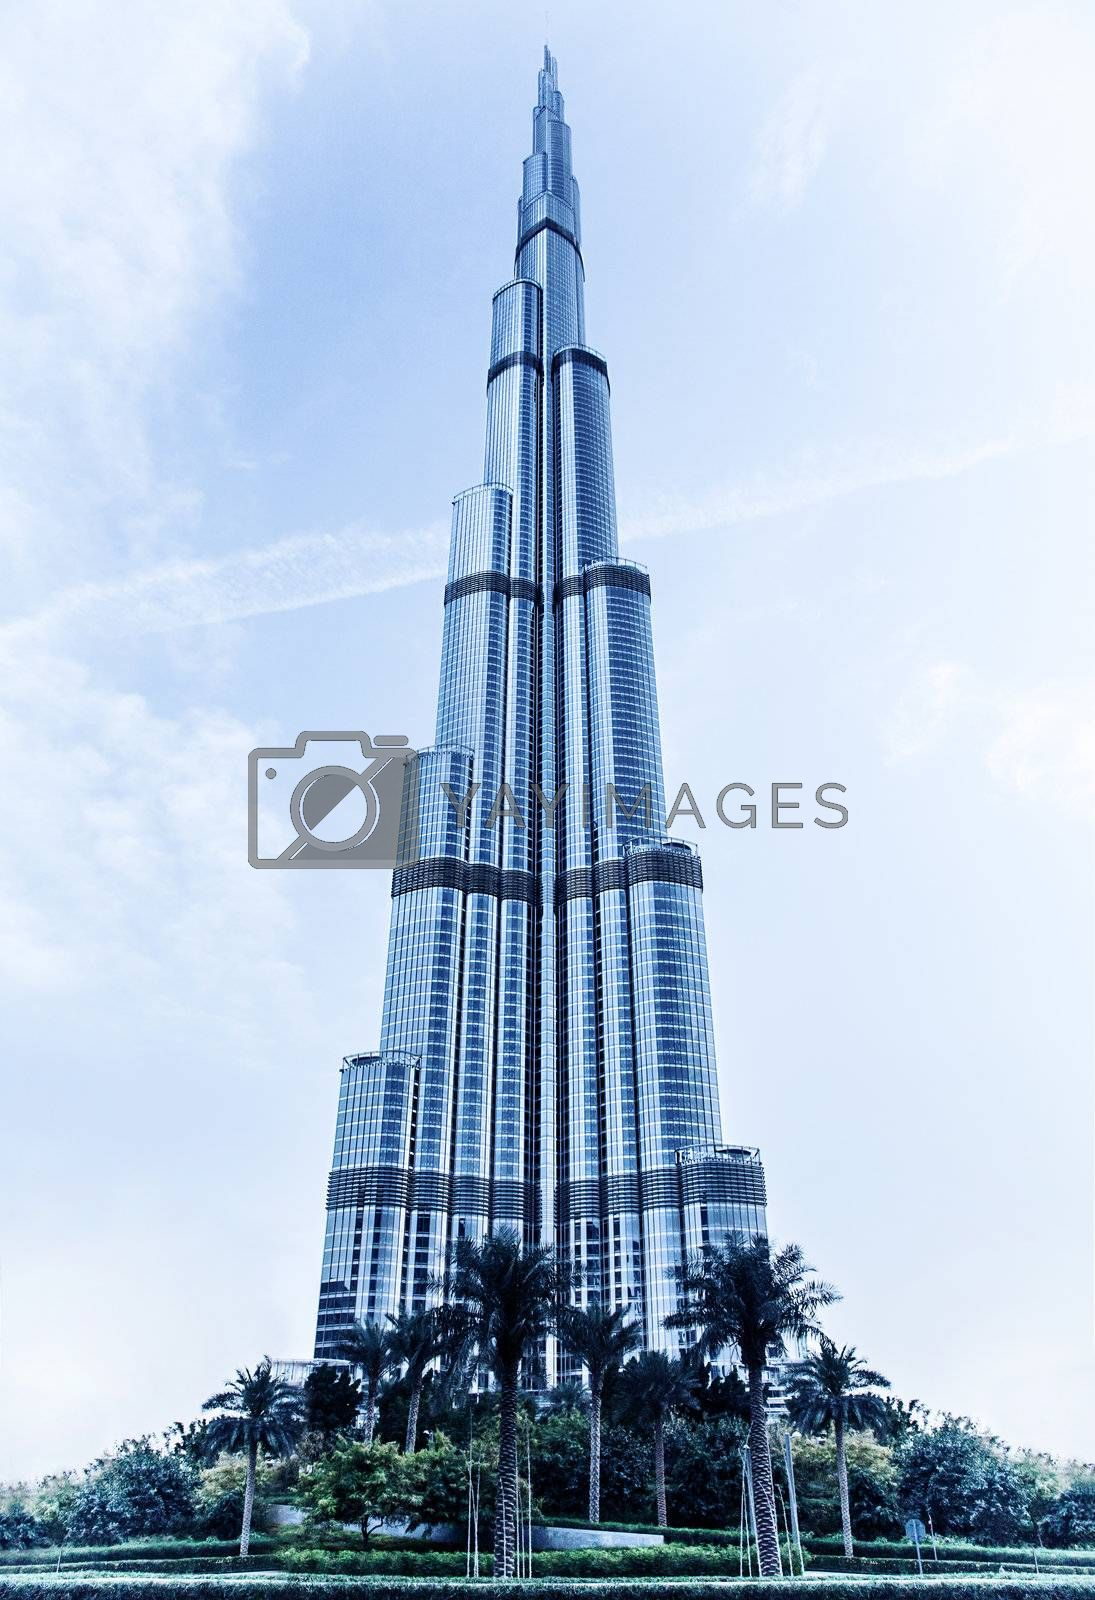 DUBAI, UAE - FEBRUARY 16: Burj Khalifa - world's tallest tower in the world at 828m, located in Downtown Dubai, Burj Dubai on February 16, 2012 in Dubai, United Arab Emirates